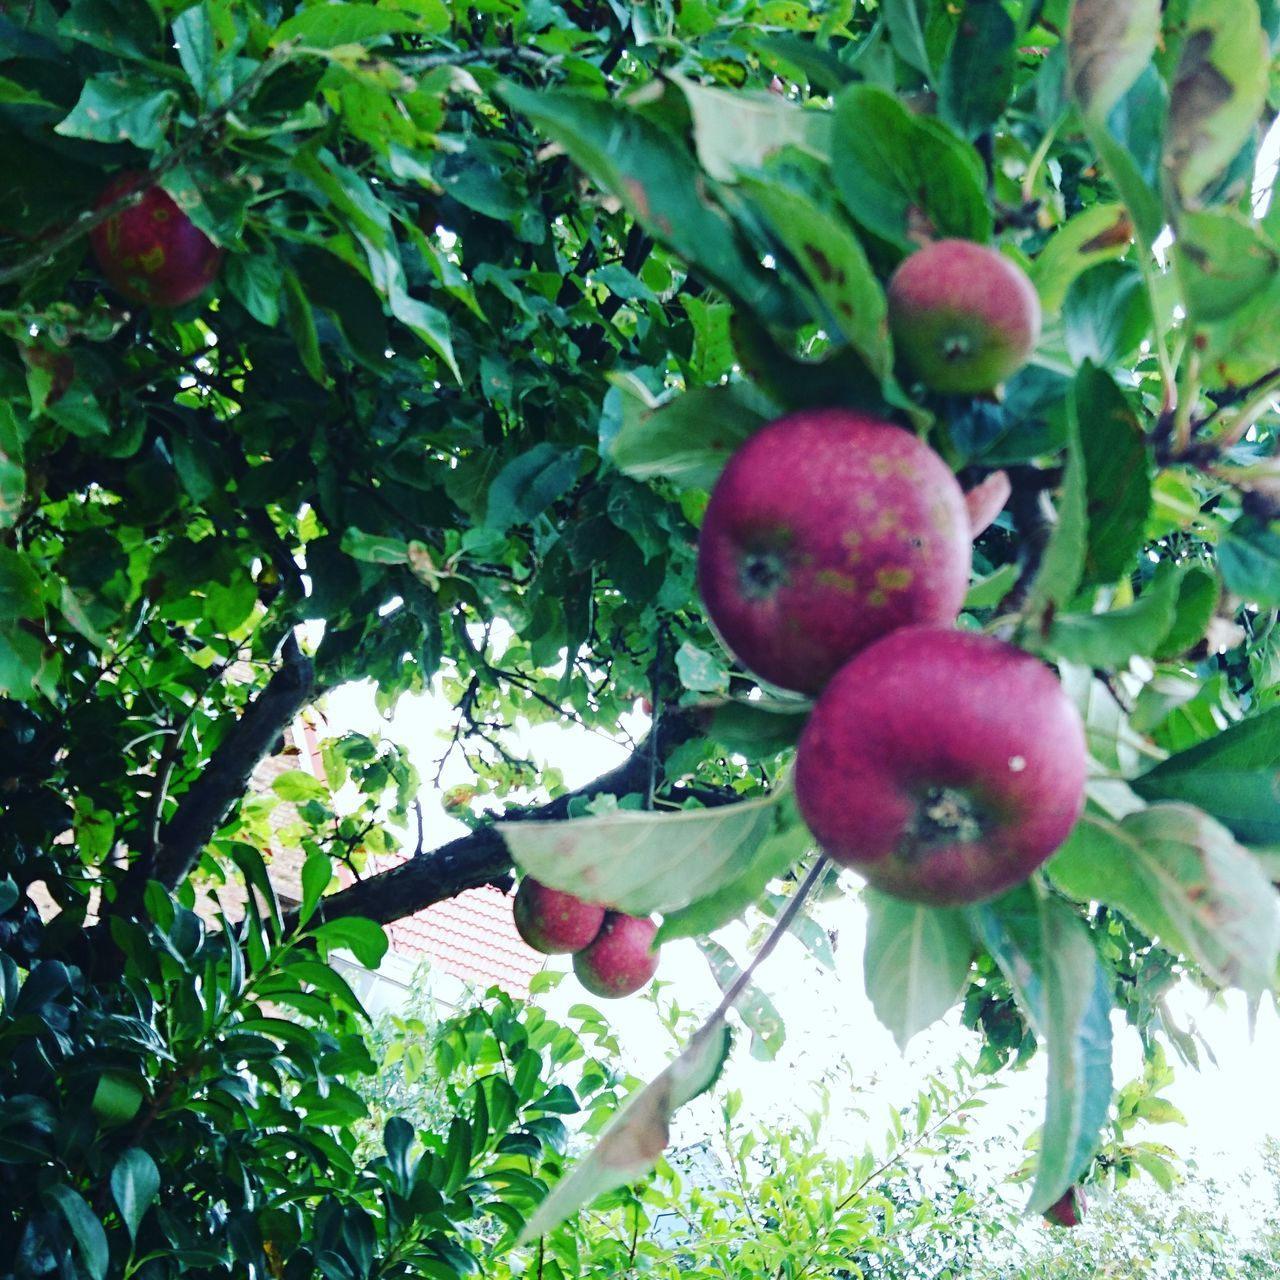 Picking apples in the garden Fruit Growth Tree Food And Drink Freshness Food Apples Healthy Eating Leaf Nature Green Color Branch Close-up Horizontal Outdoors No People Agriculture Day